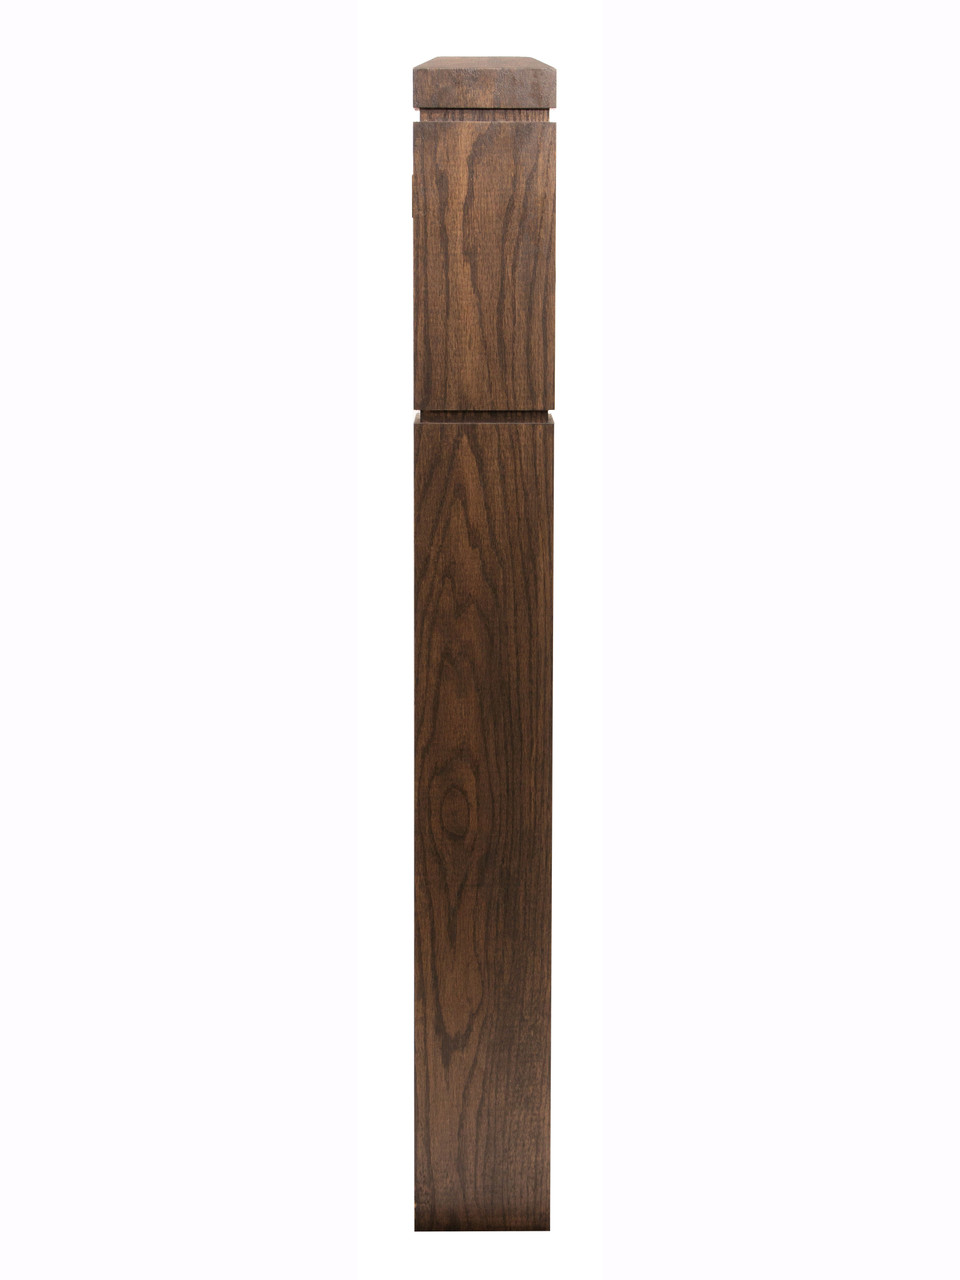 HF5900 S4S Large Routed Newel Post Stained